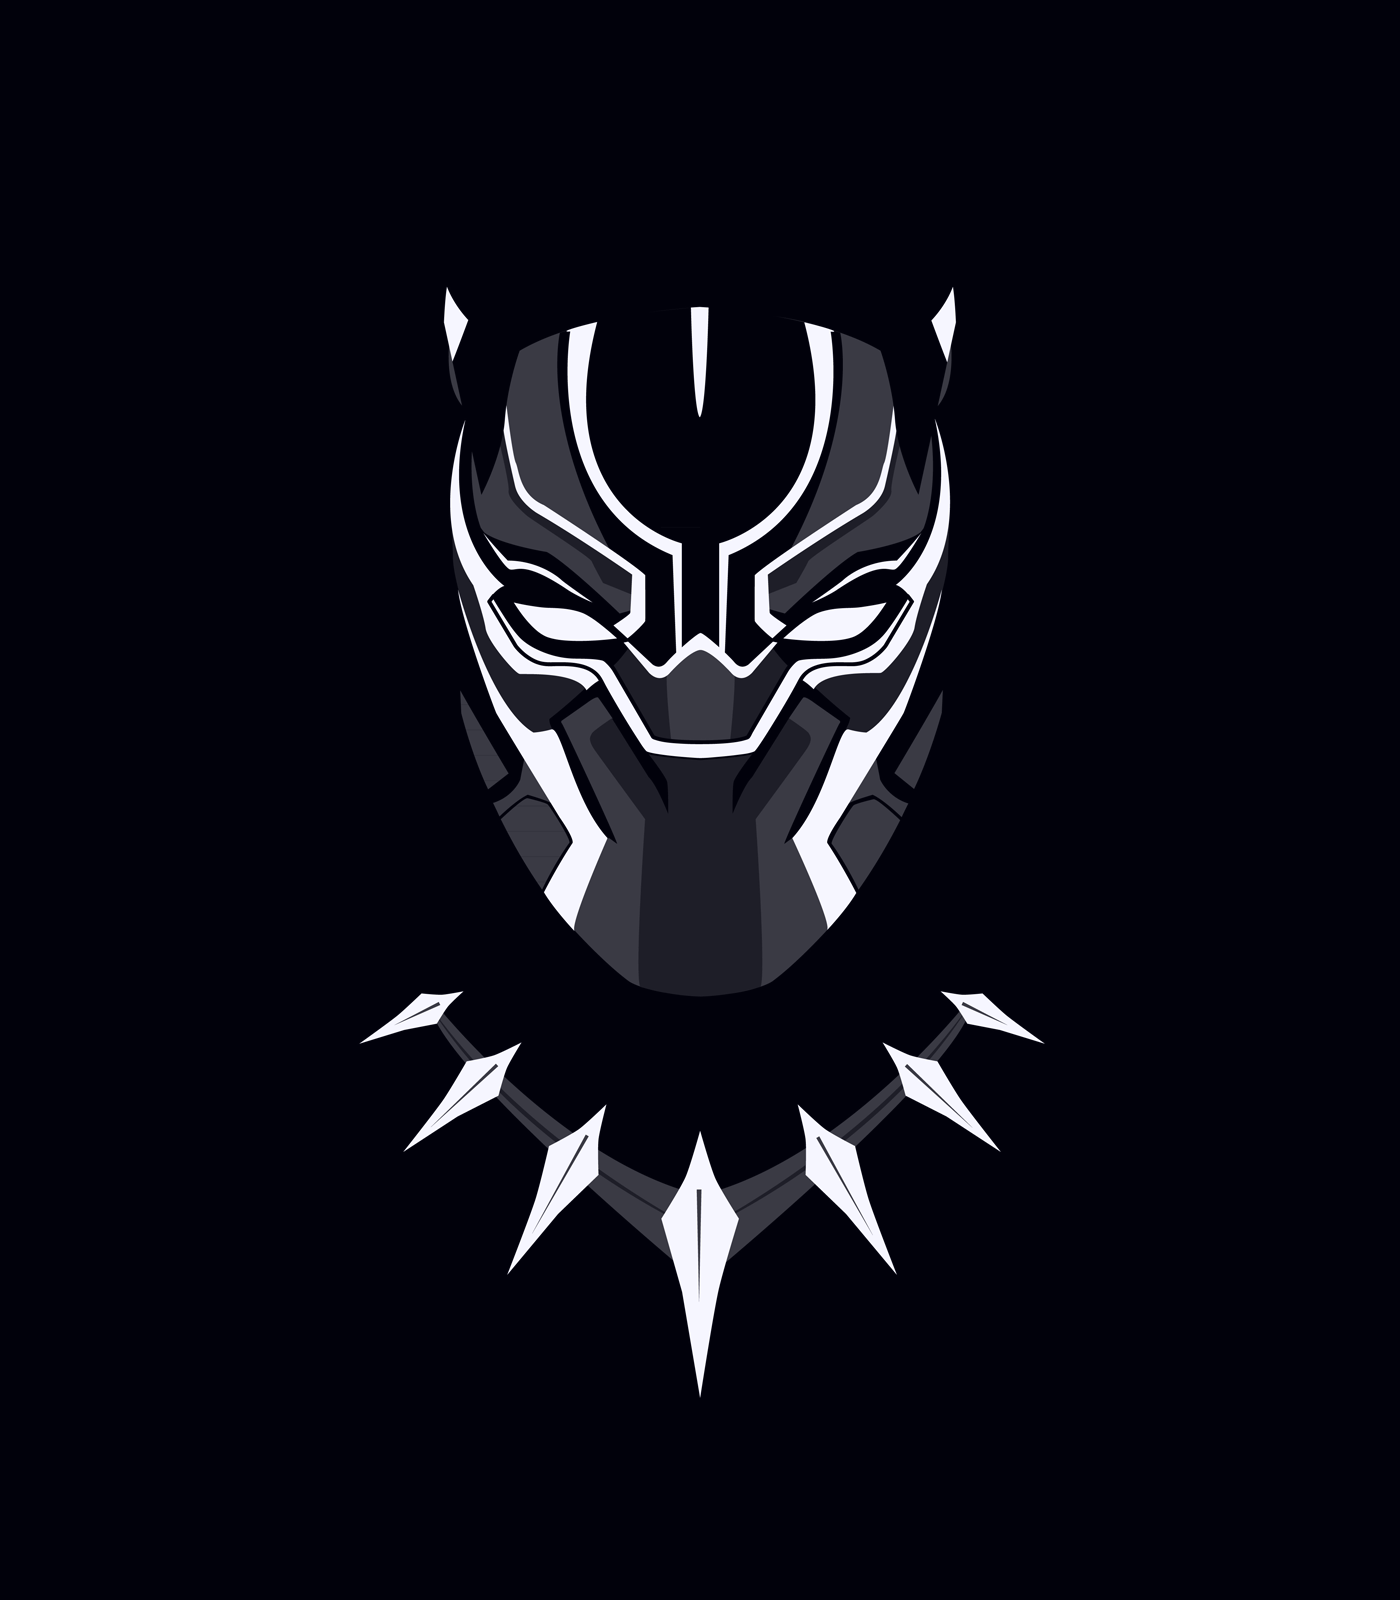 Ethan Livingstone Panther P Png 1400 1600 Black Panther Marvel Black Panther Art Black Panther